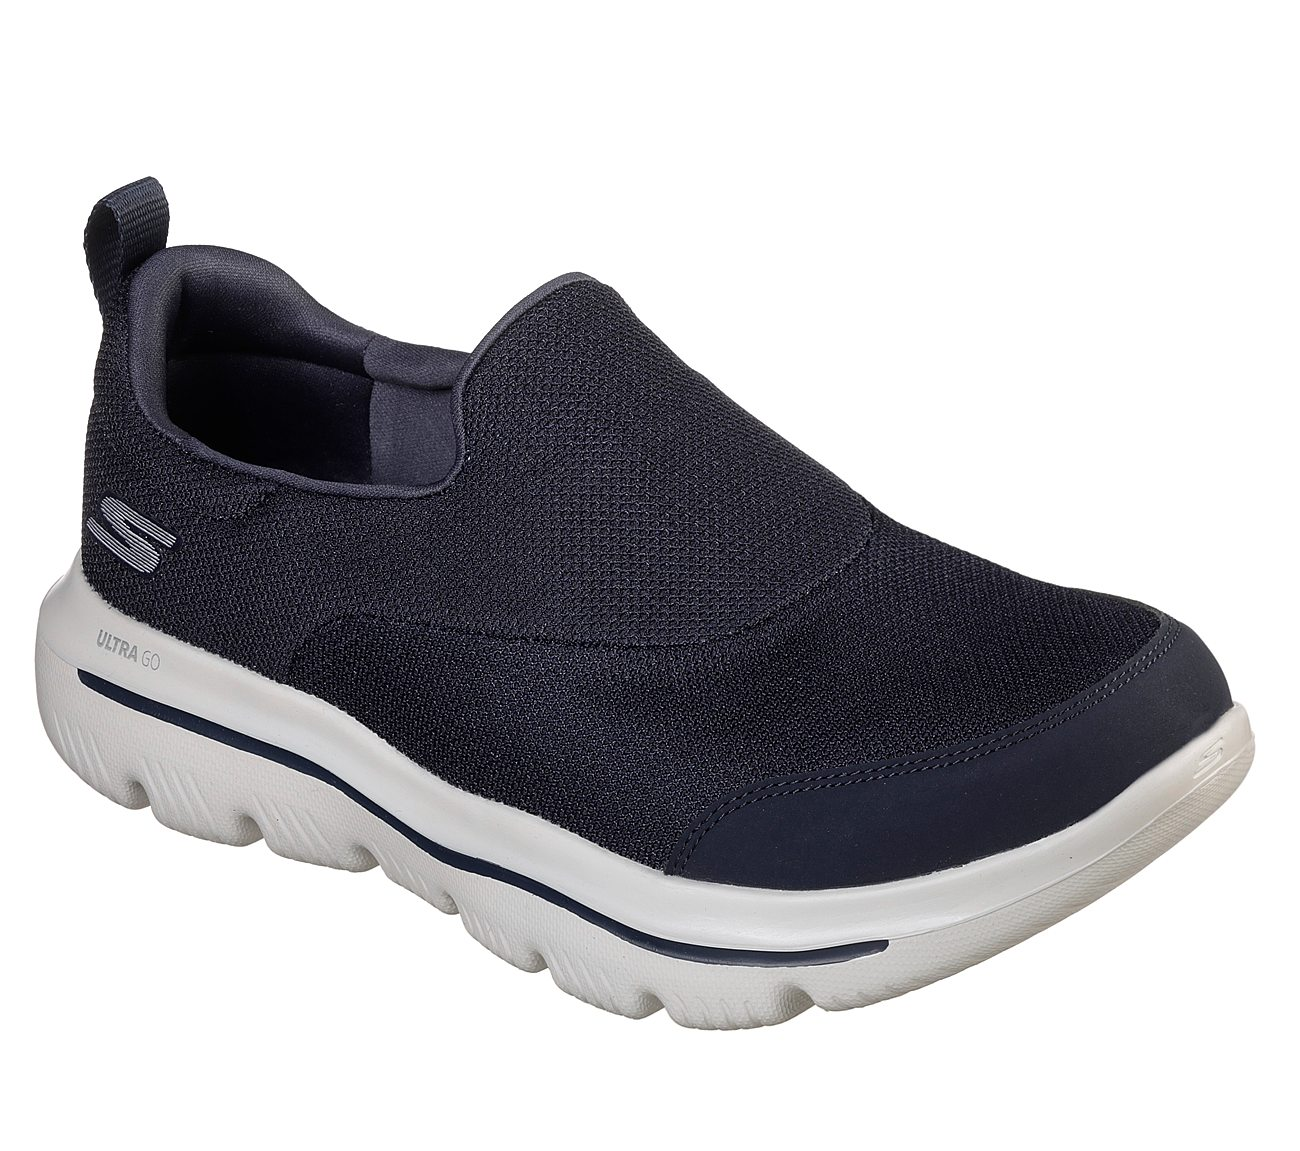 fe706943d4d2d Buy SKECHERS Skechers GOwalk Evolution Ultra - Rapids Skechers ...